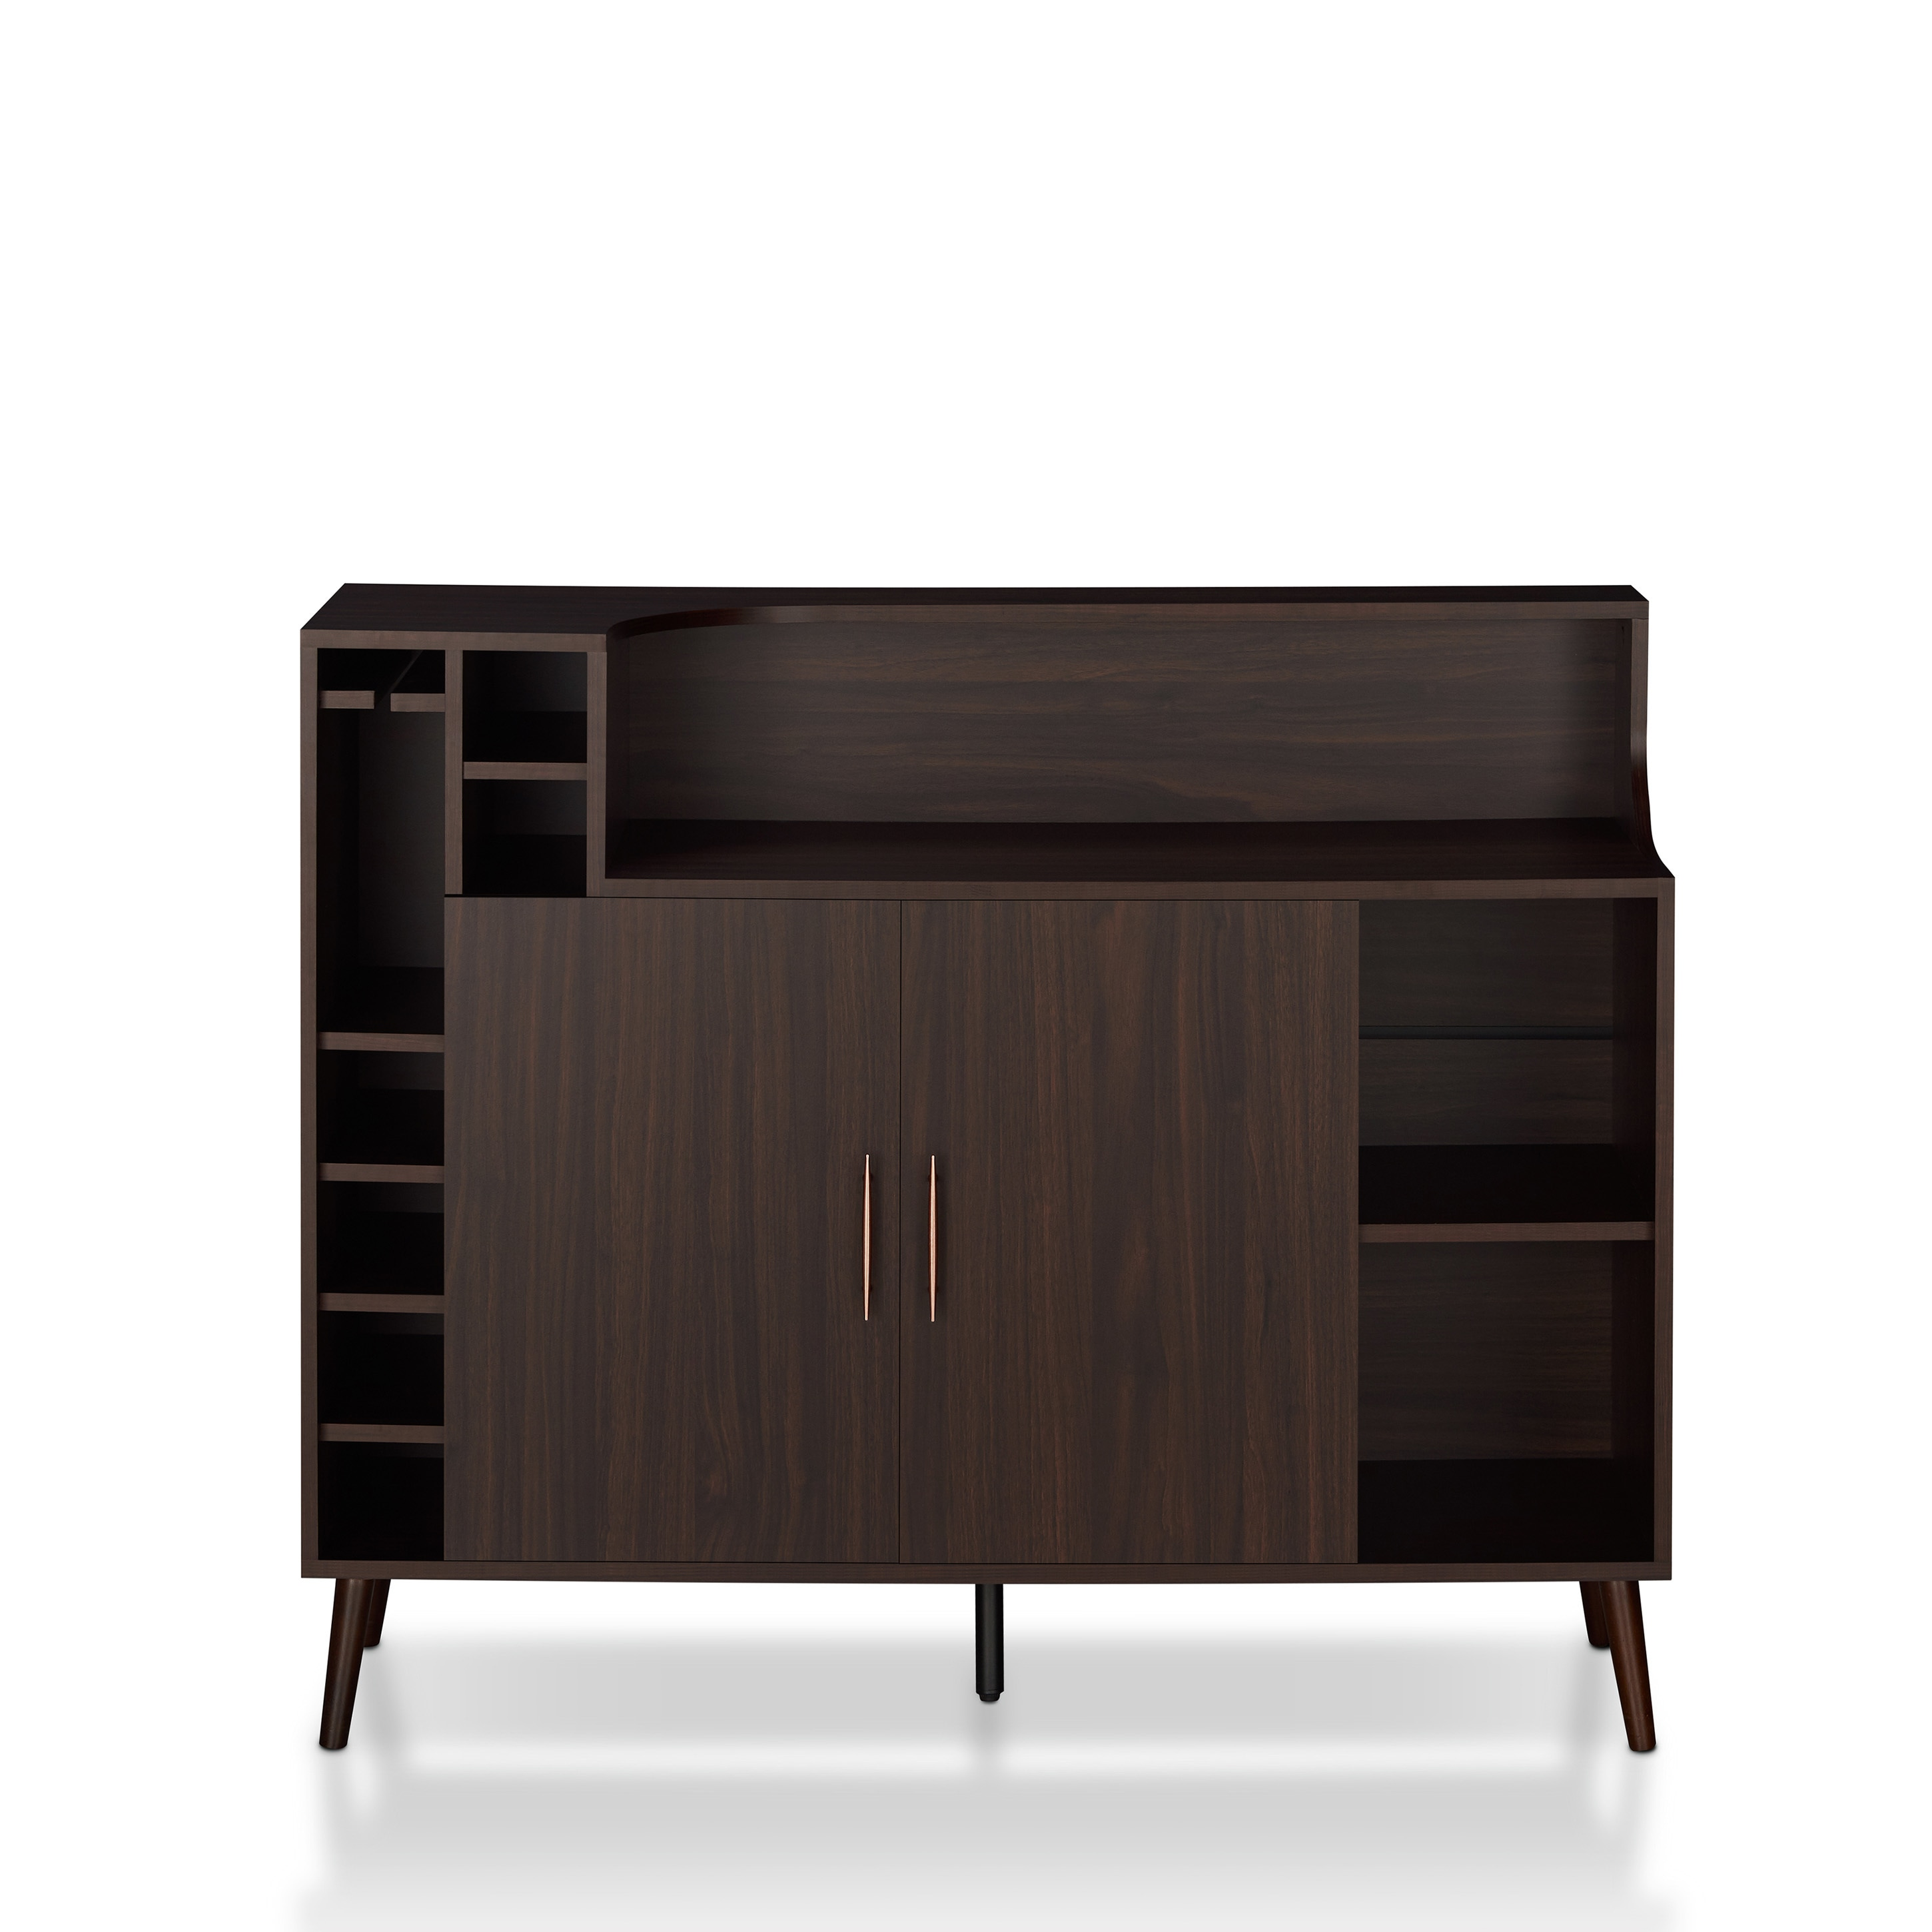 Lovely Furniture Of America Norlina Contemporary Wine Rack Buffet   Free Shipping  Today   Overstock   27336883